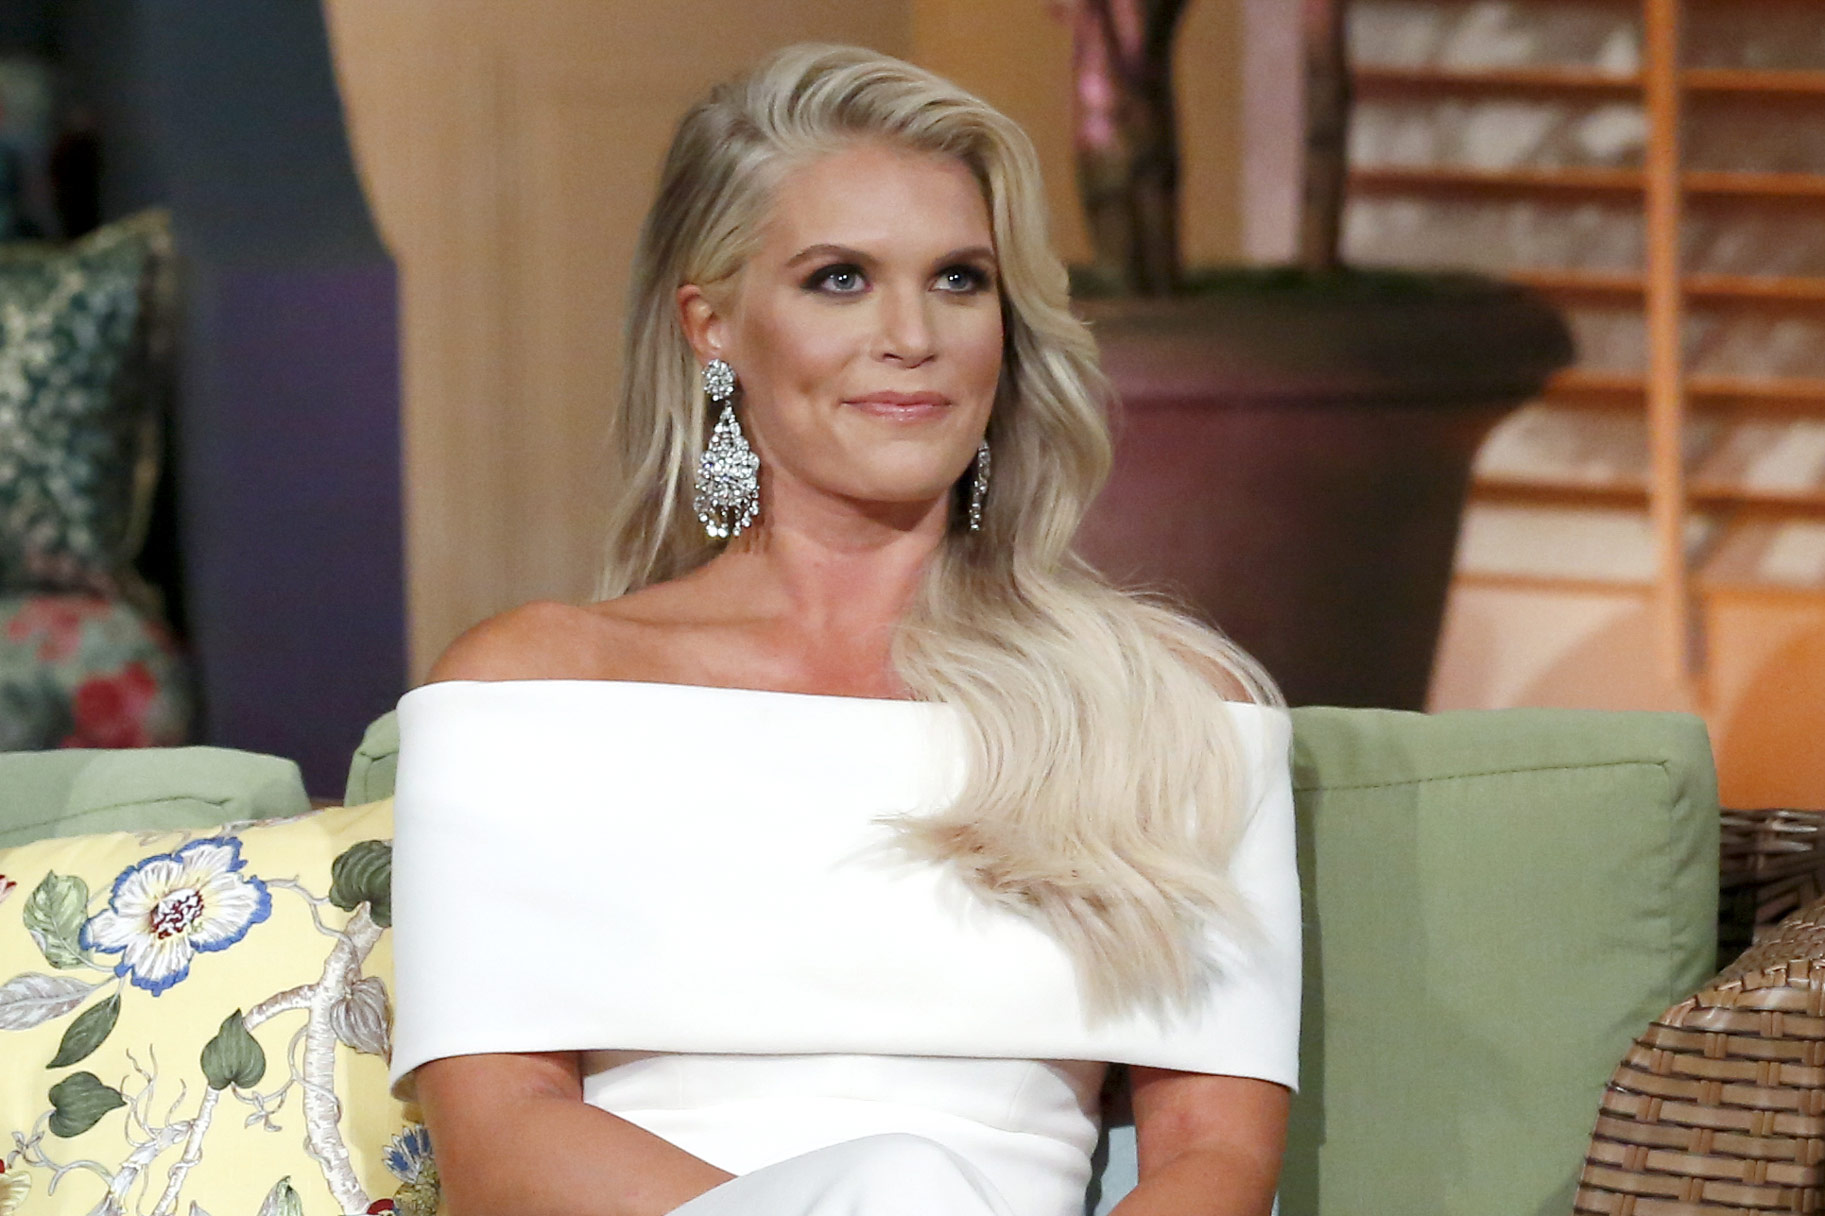 Madison LeCroy at the Southern Charm Season 6 Reunion